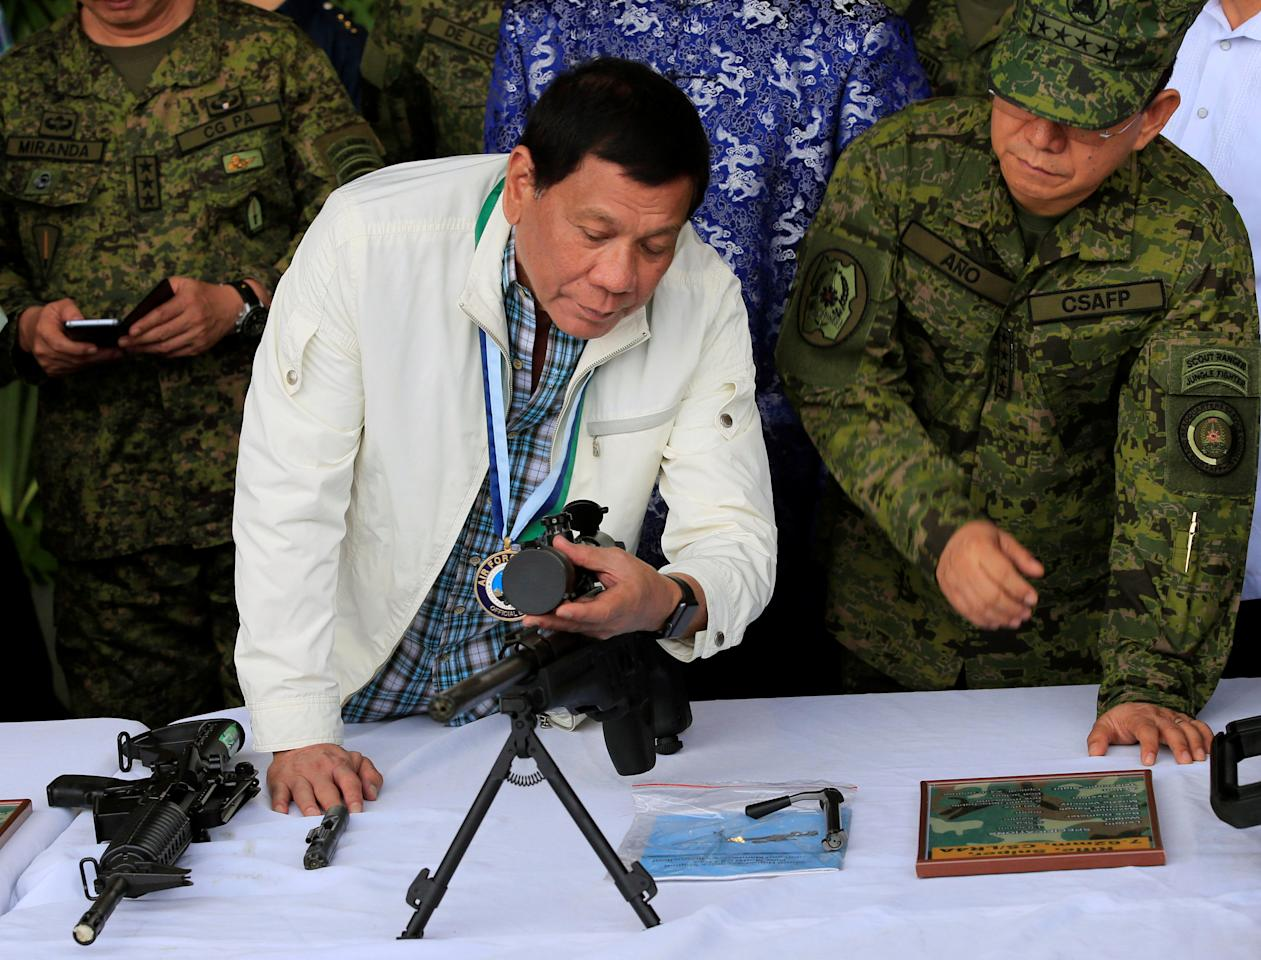 Philippine President Rodrigo Duterte adjusts the scope of a sniper rifle while Chief of Staff of the Armed Forces of the Philippines Lt. Gen. Eduardo Ano looks on at Clark Air Base, near Angeles City, Philippines June 28, 2017. REUTERS/Romeo Ranoco